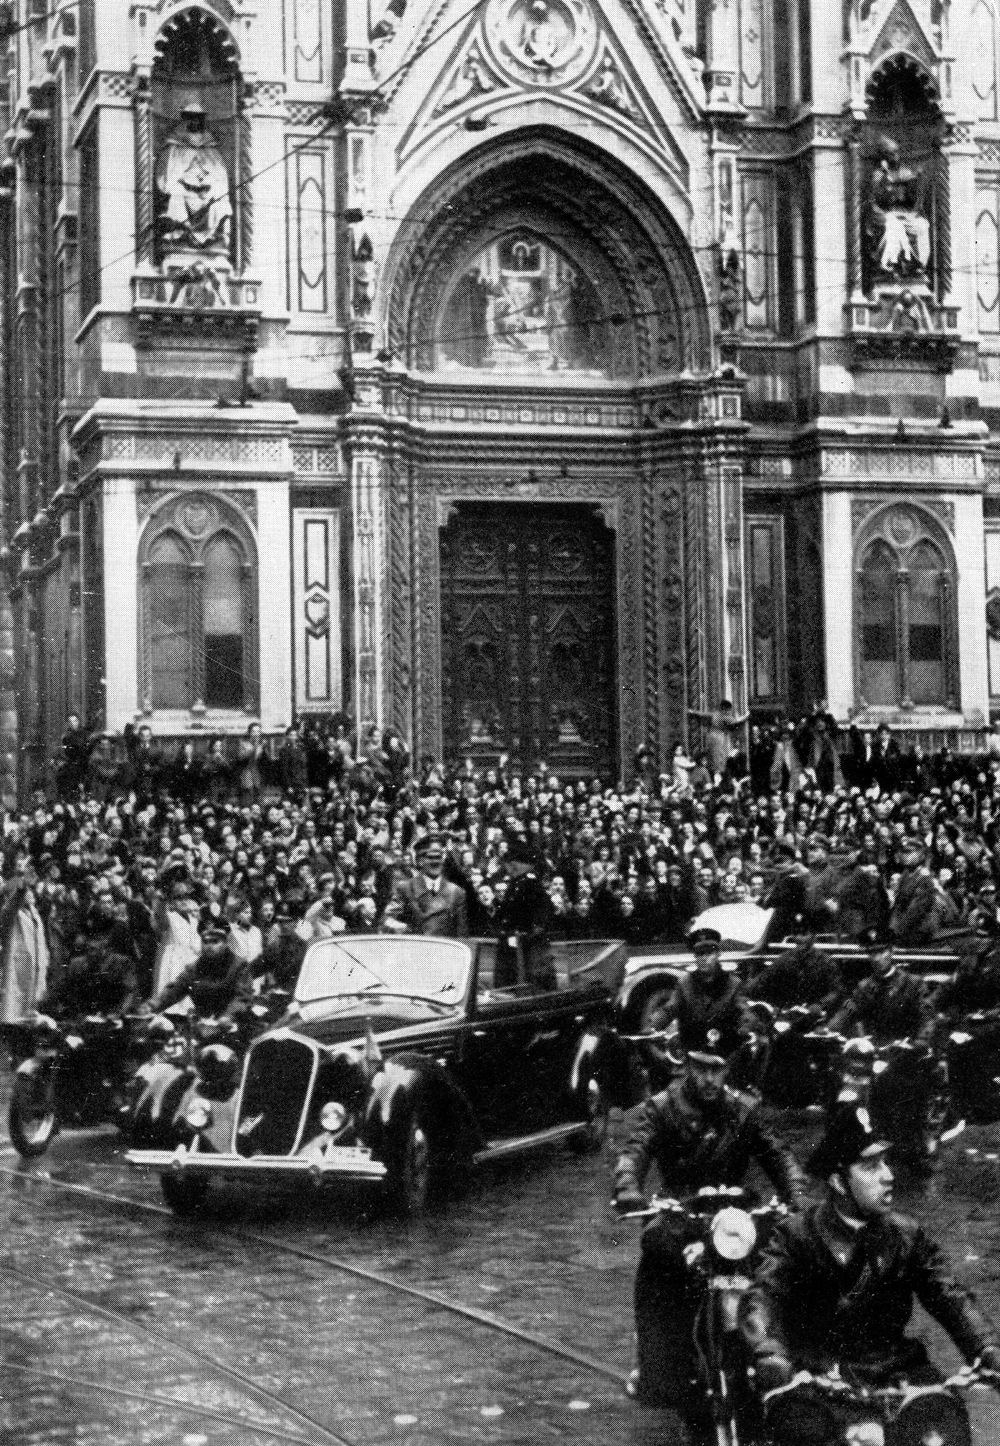 Adolf Hitler and Benito Mussolini are welcomed by the crowd in front of the cathedral of Florence